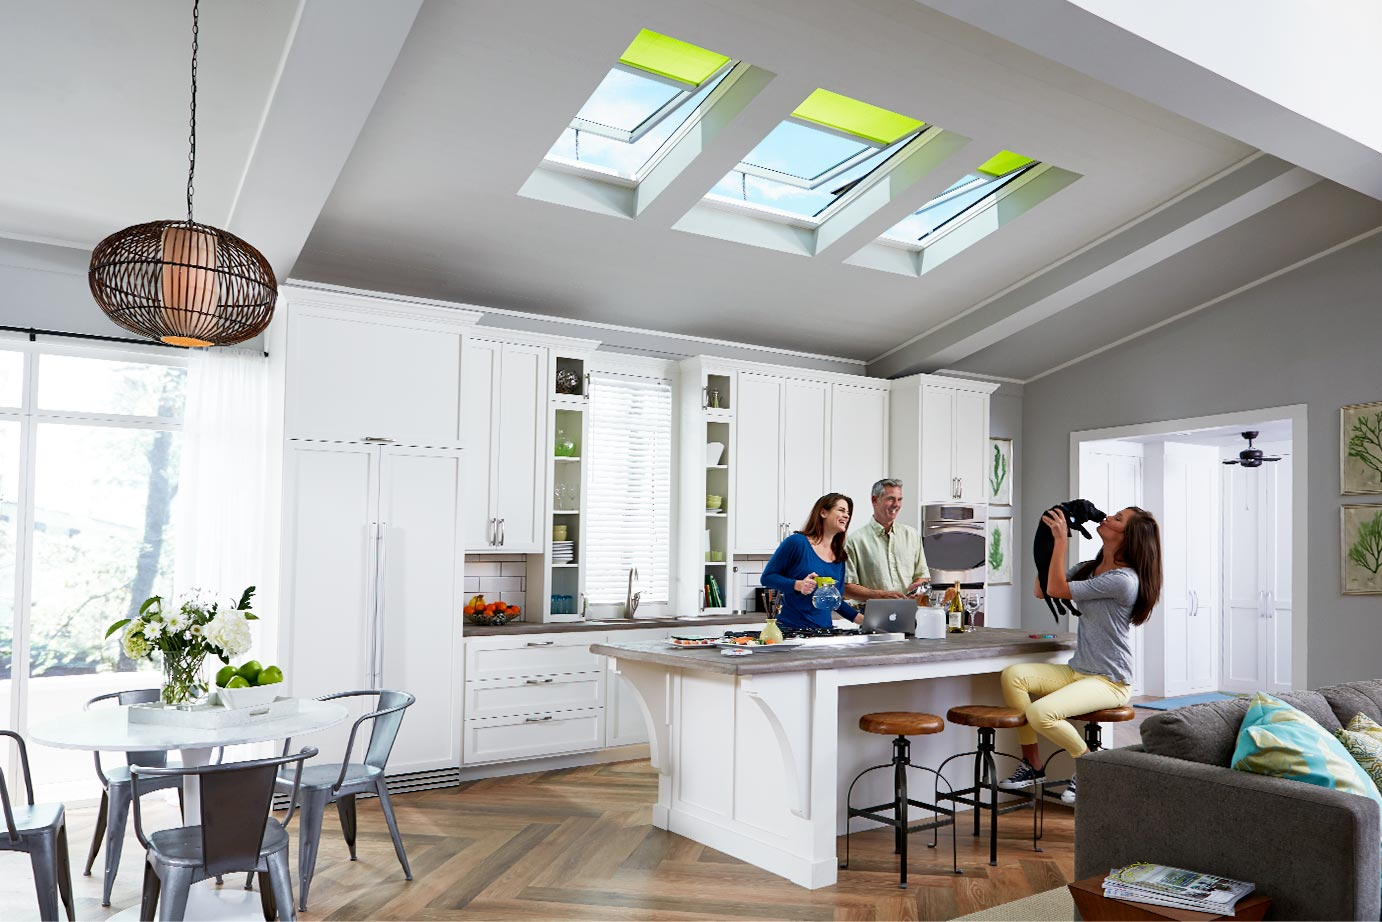 kitchen green blinds?h=922&la=en&w=1382&cc=grid_12&key=145917965341898&sw=960 velux frequently asked questions velux klf 100 wiring diagram at eliteediting.co